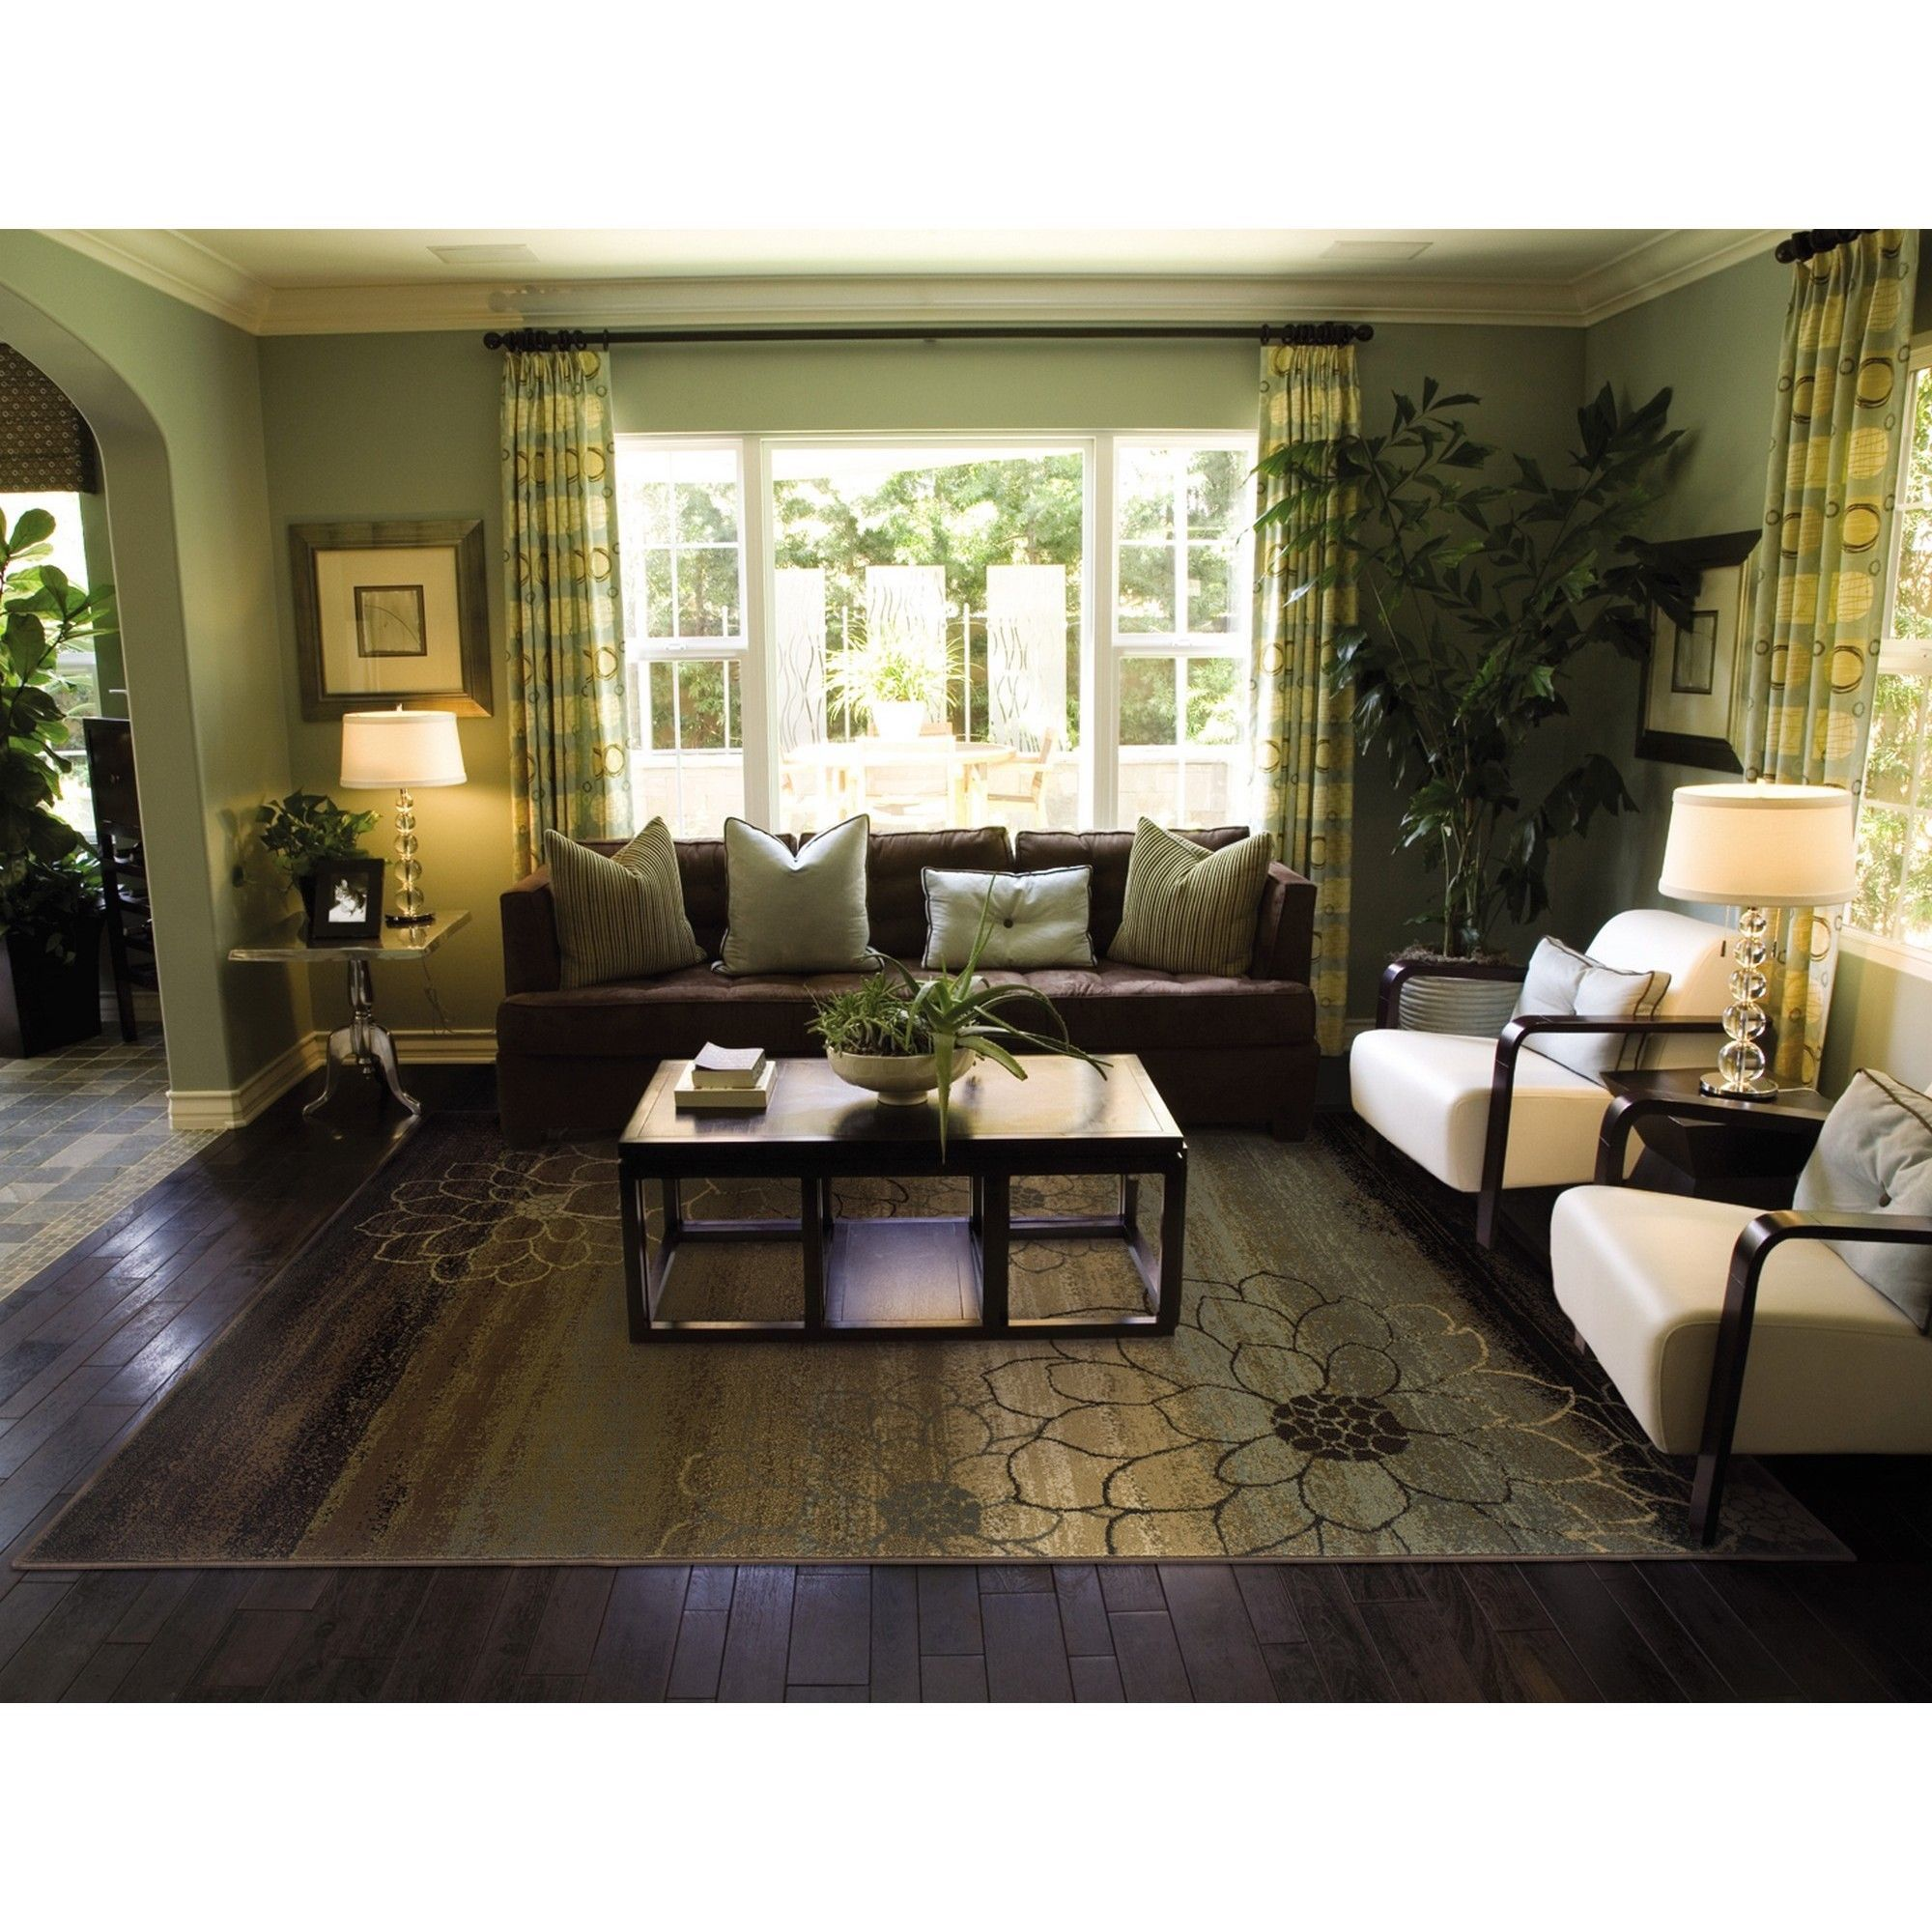 machine made blue brown gold rug 6 7 x 9 6 6 7 x 9 on small laundry room paint ideas with brown furniture colors id=90462